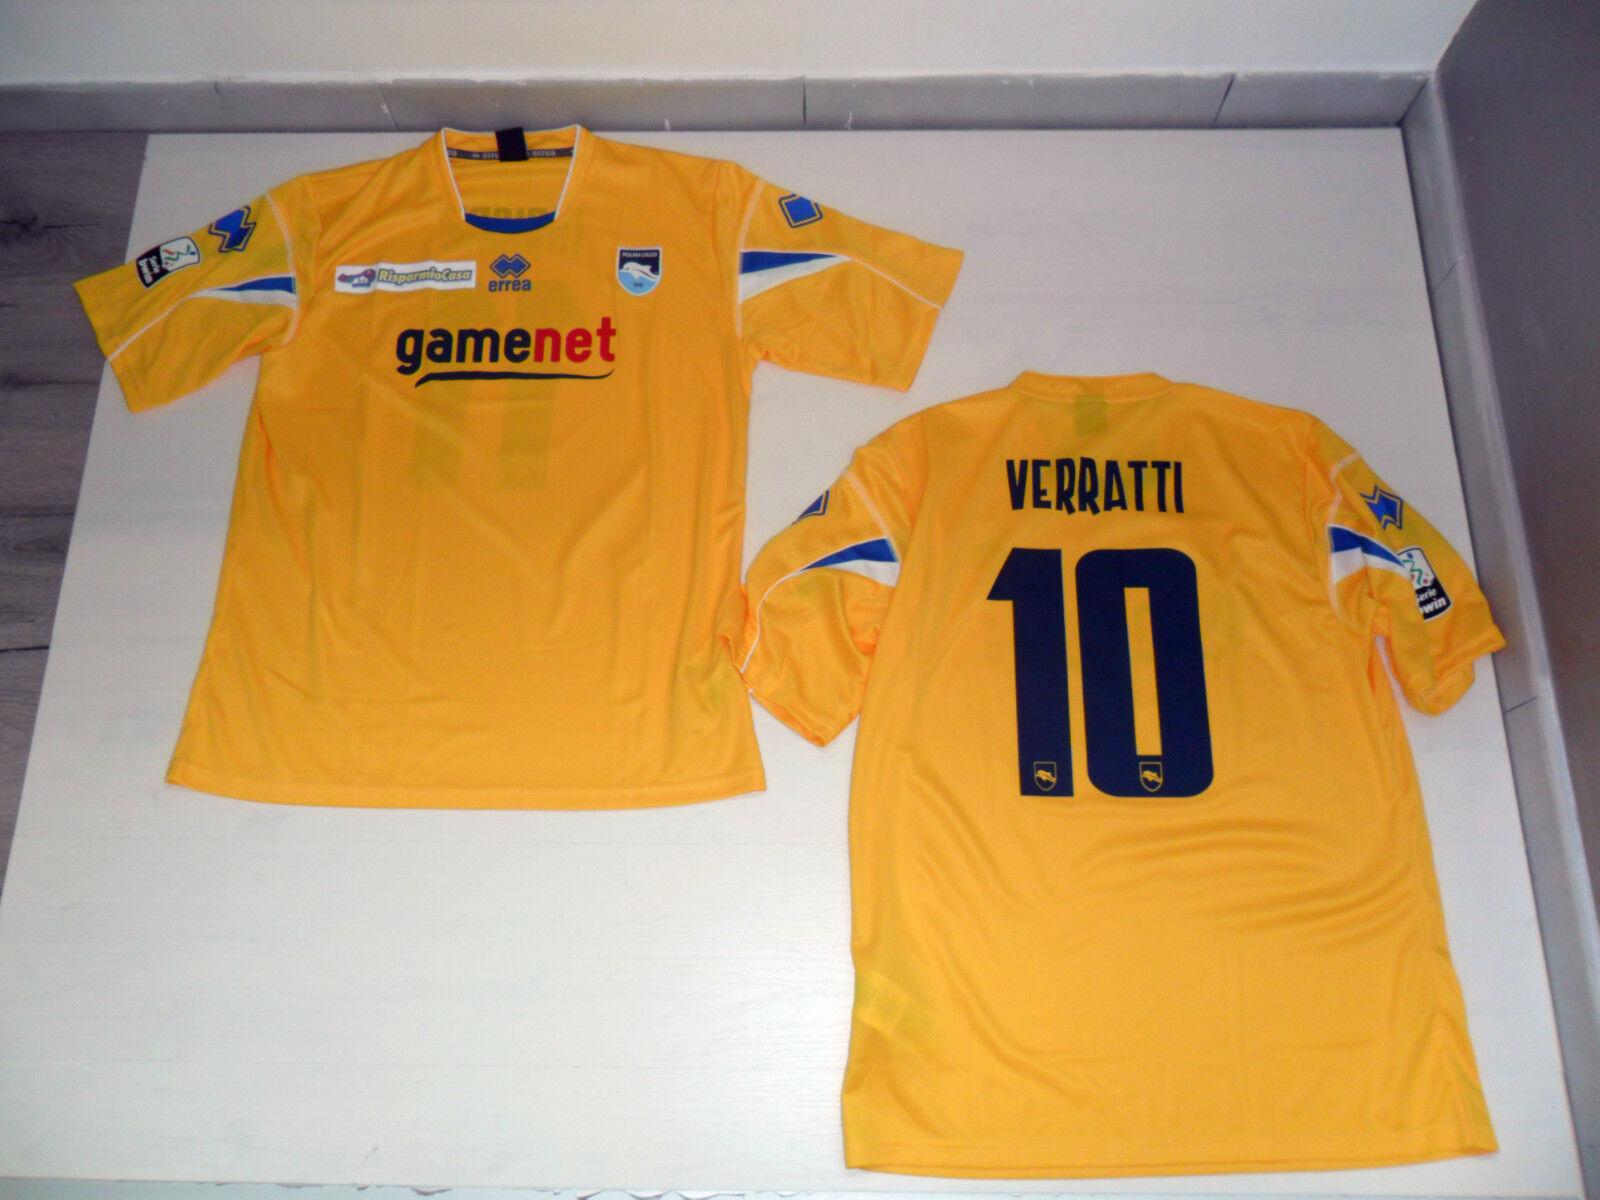 T. XL 10 VERRATTI PESCARA CAMISETA CARRERA 11 12 THIRD JERSEY SHIRT AMARILLO